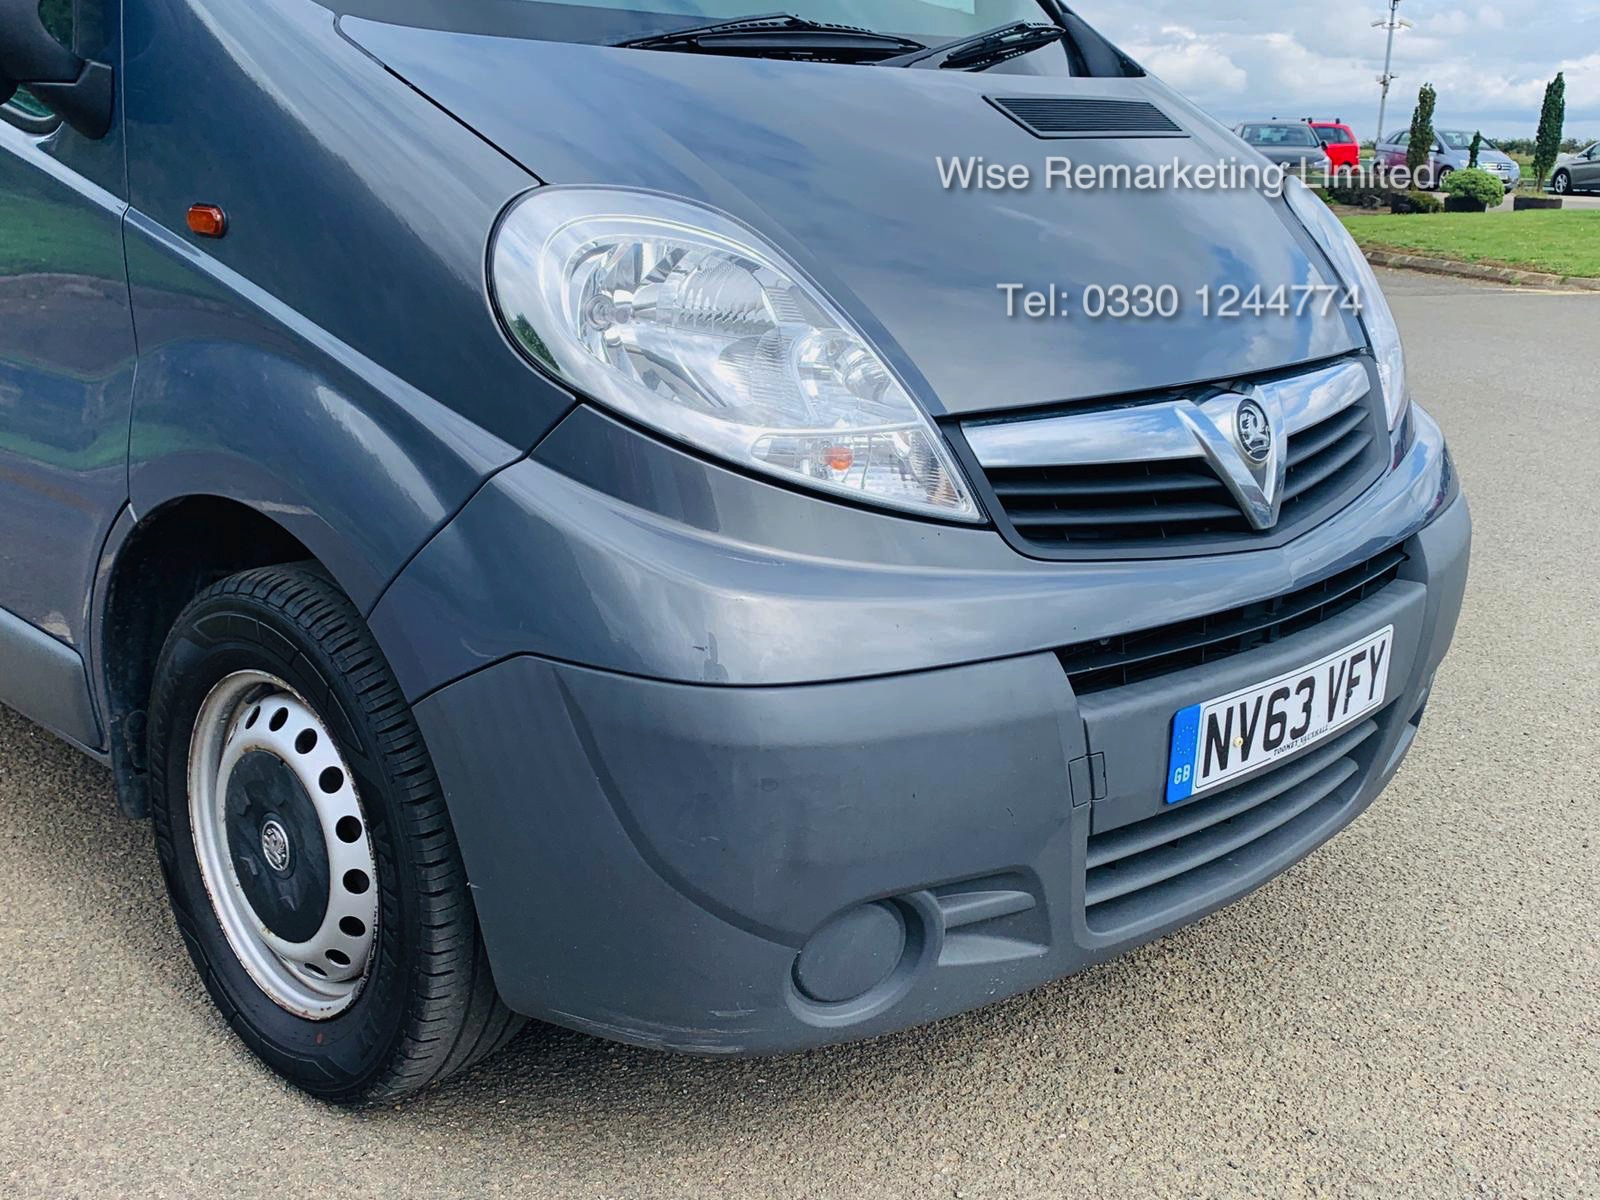 Vauxhall Vivaro 2.0 CDTI 2900 Minibus - 2014 Model - Wheel Chair Access -1 Owner From New -History - Image 5 of 21